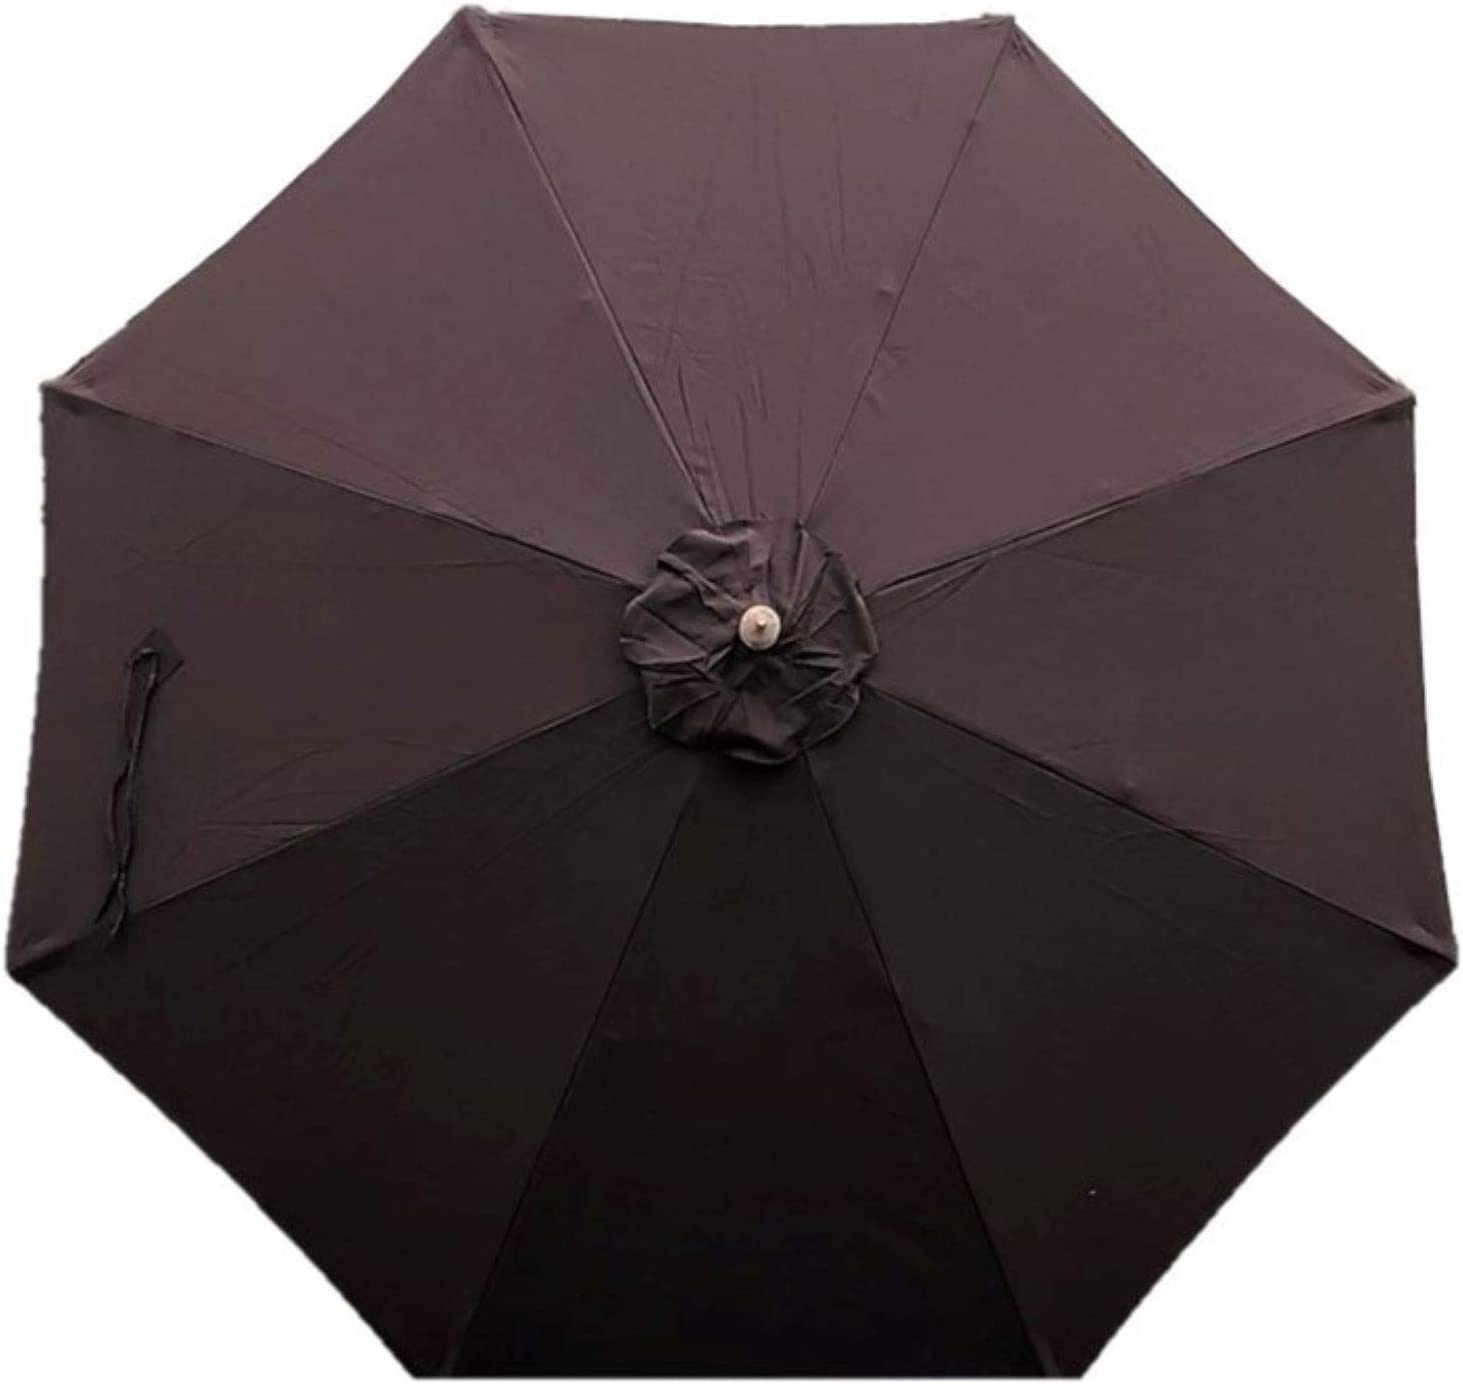 Formosa Covers Baltimore Mall Sunbrella Fabric Mail order cheap 9ft Market 8 Outdoor Patio Ribs